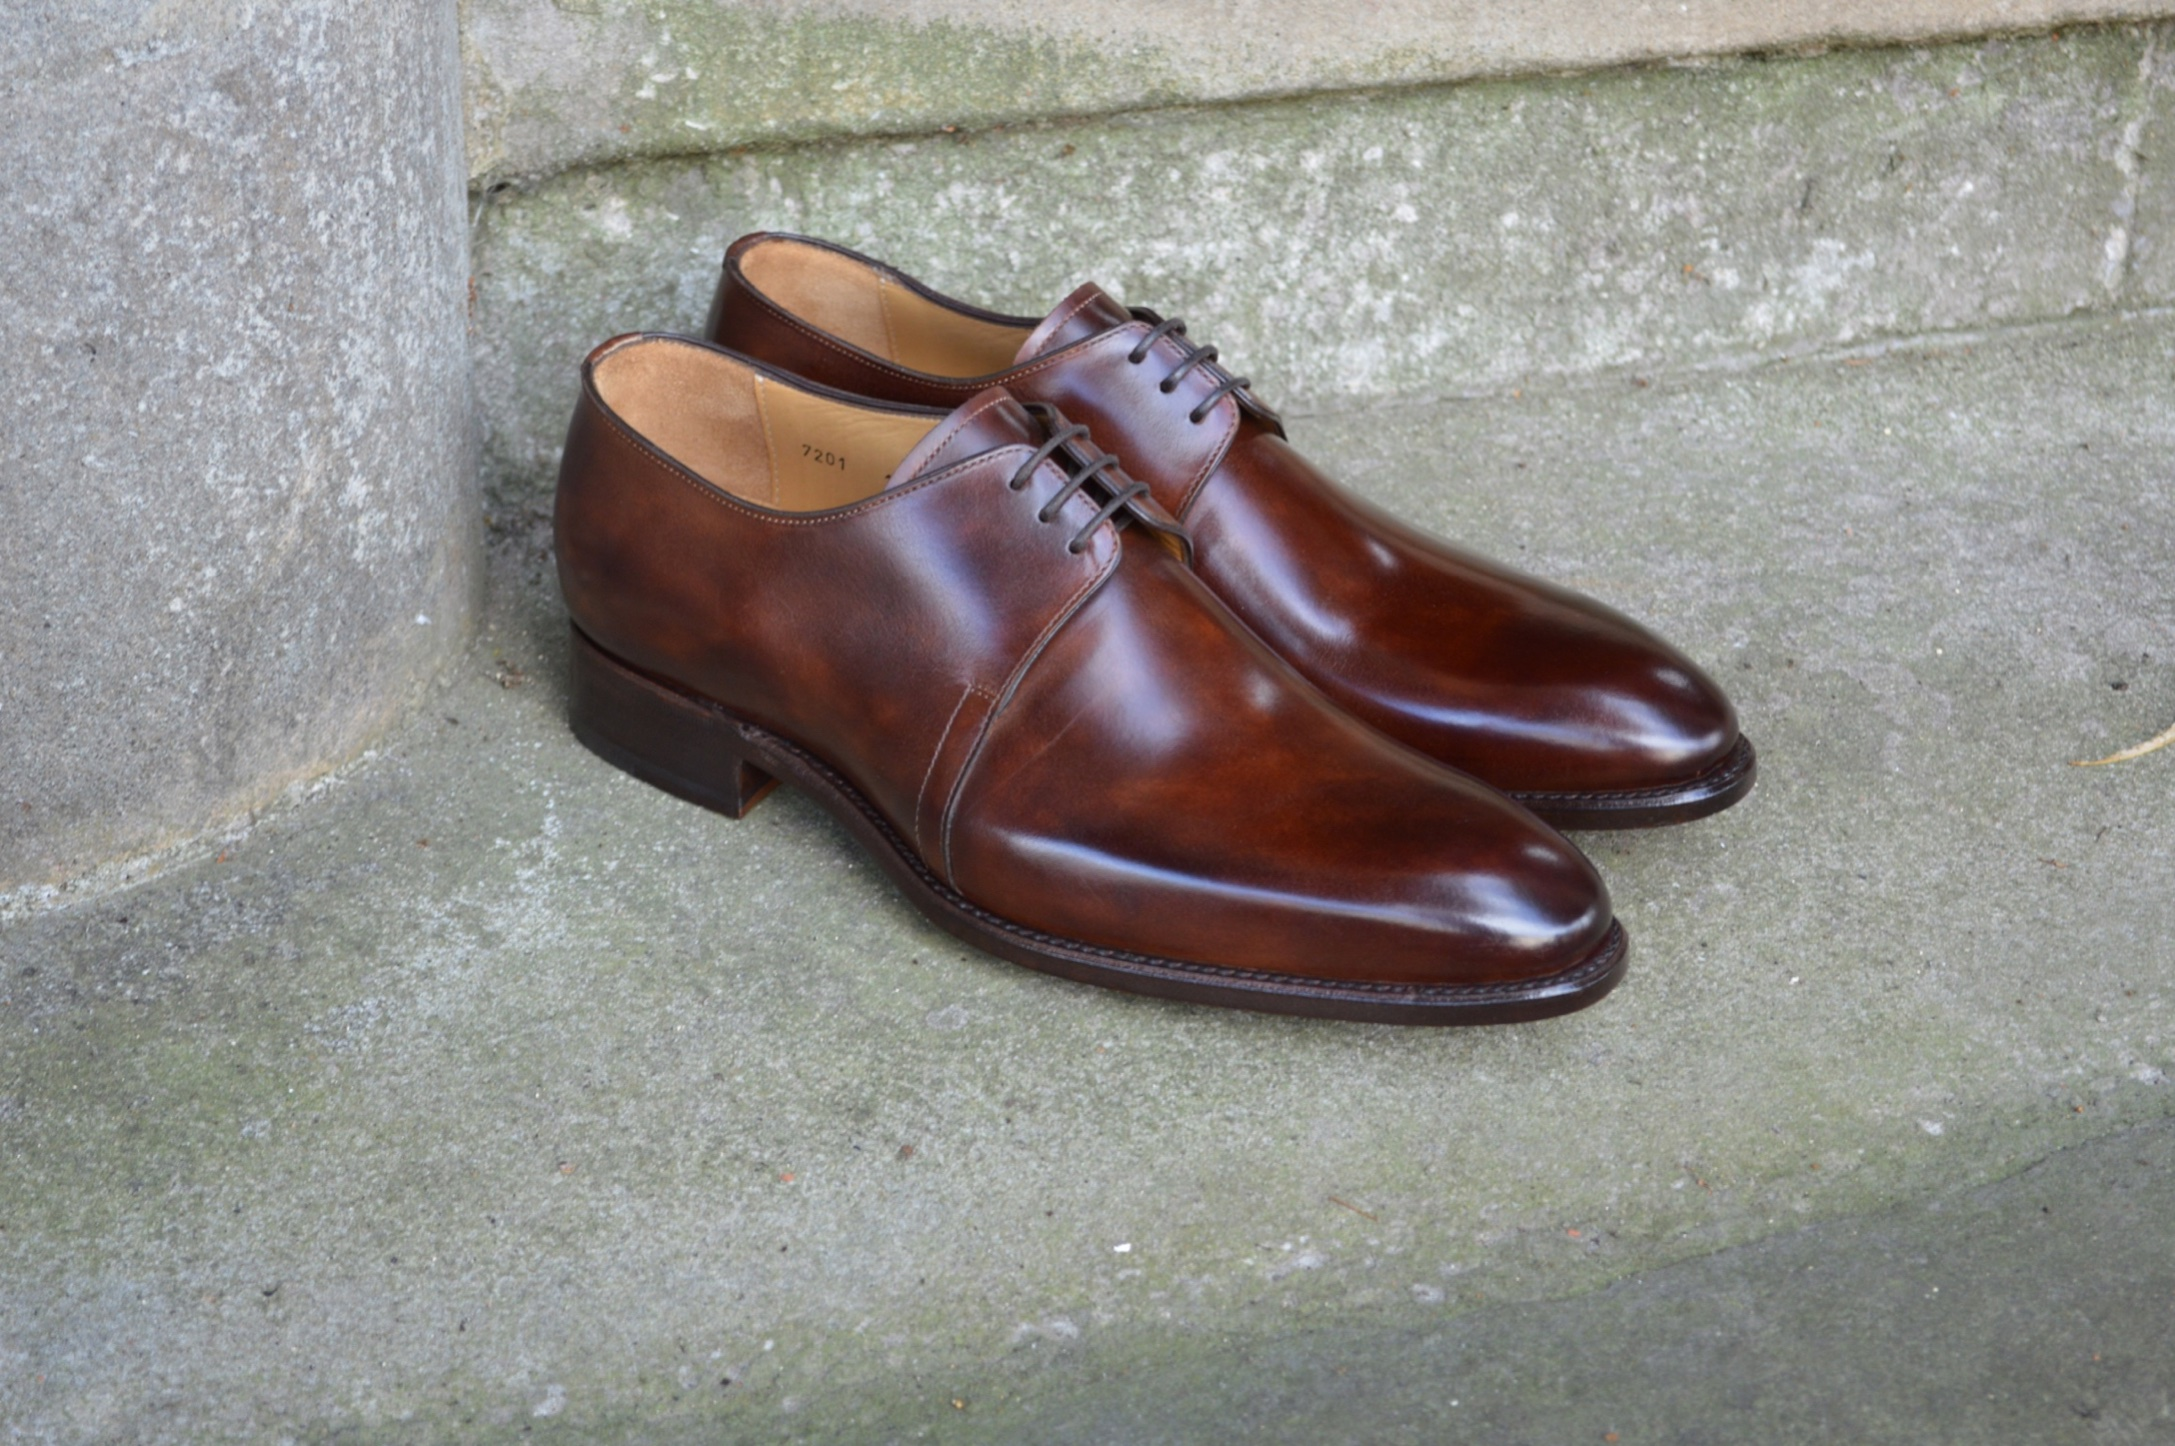 Last pair of shoes you bought? - Page 126